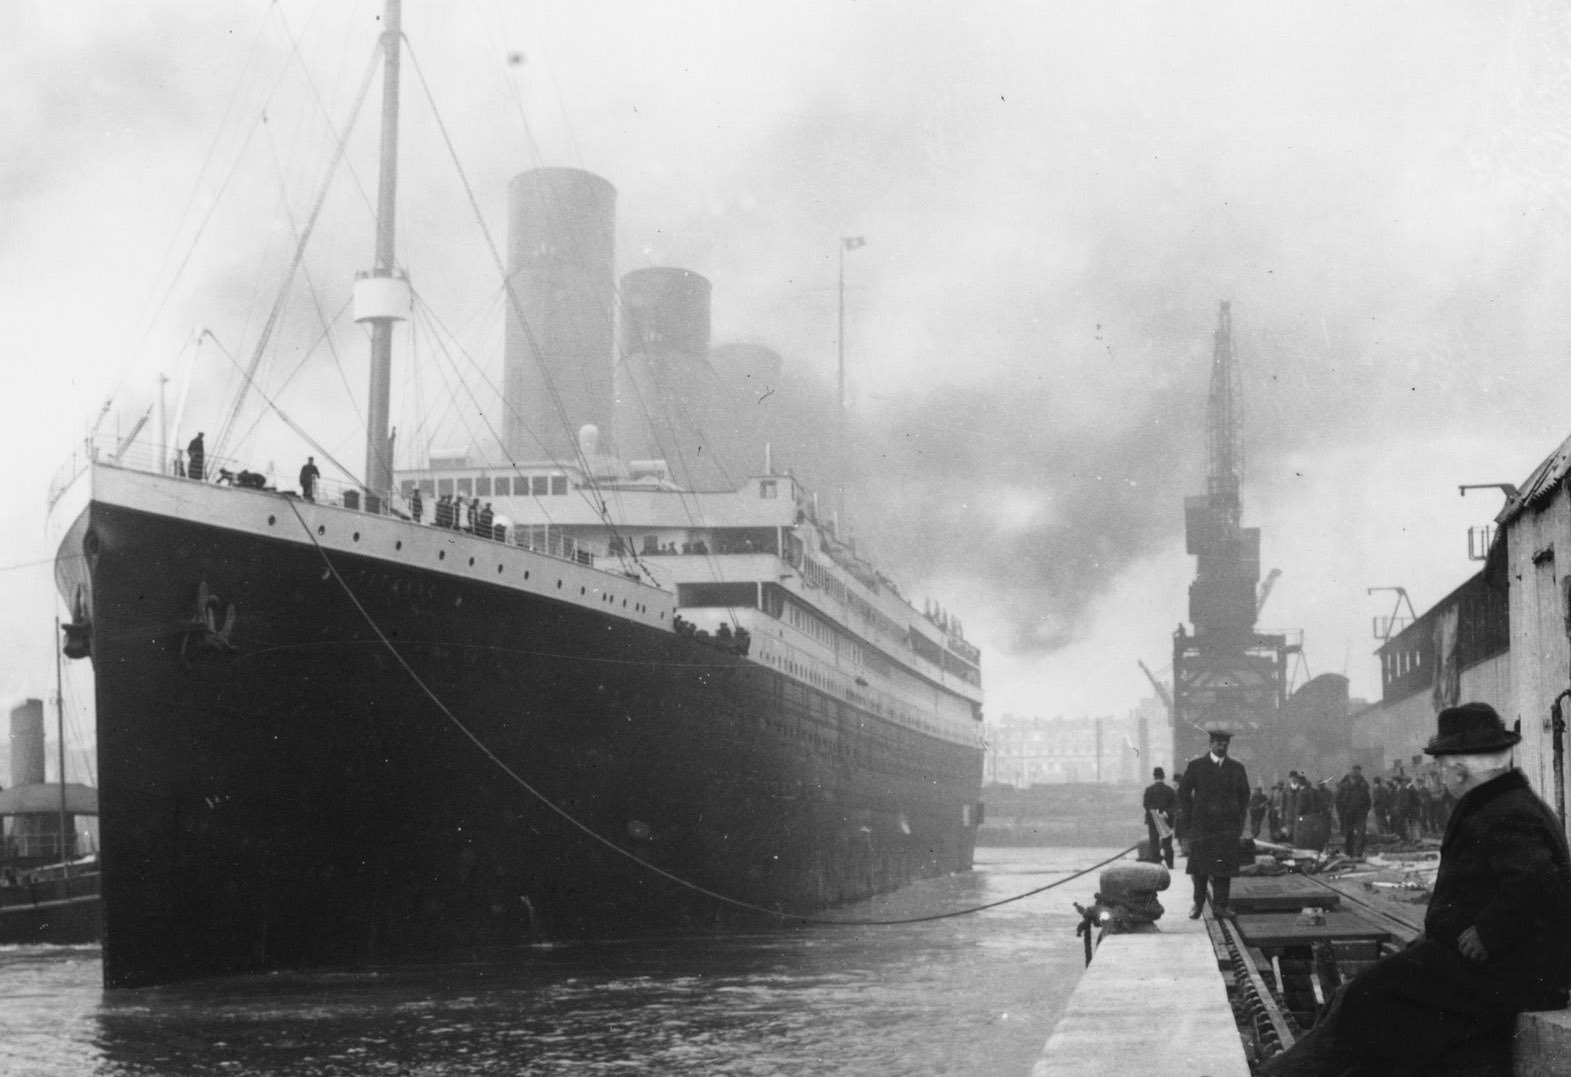 Letter reveals eerie final moments on Titanic